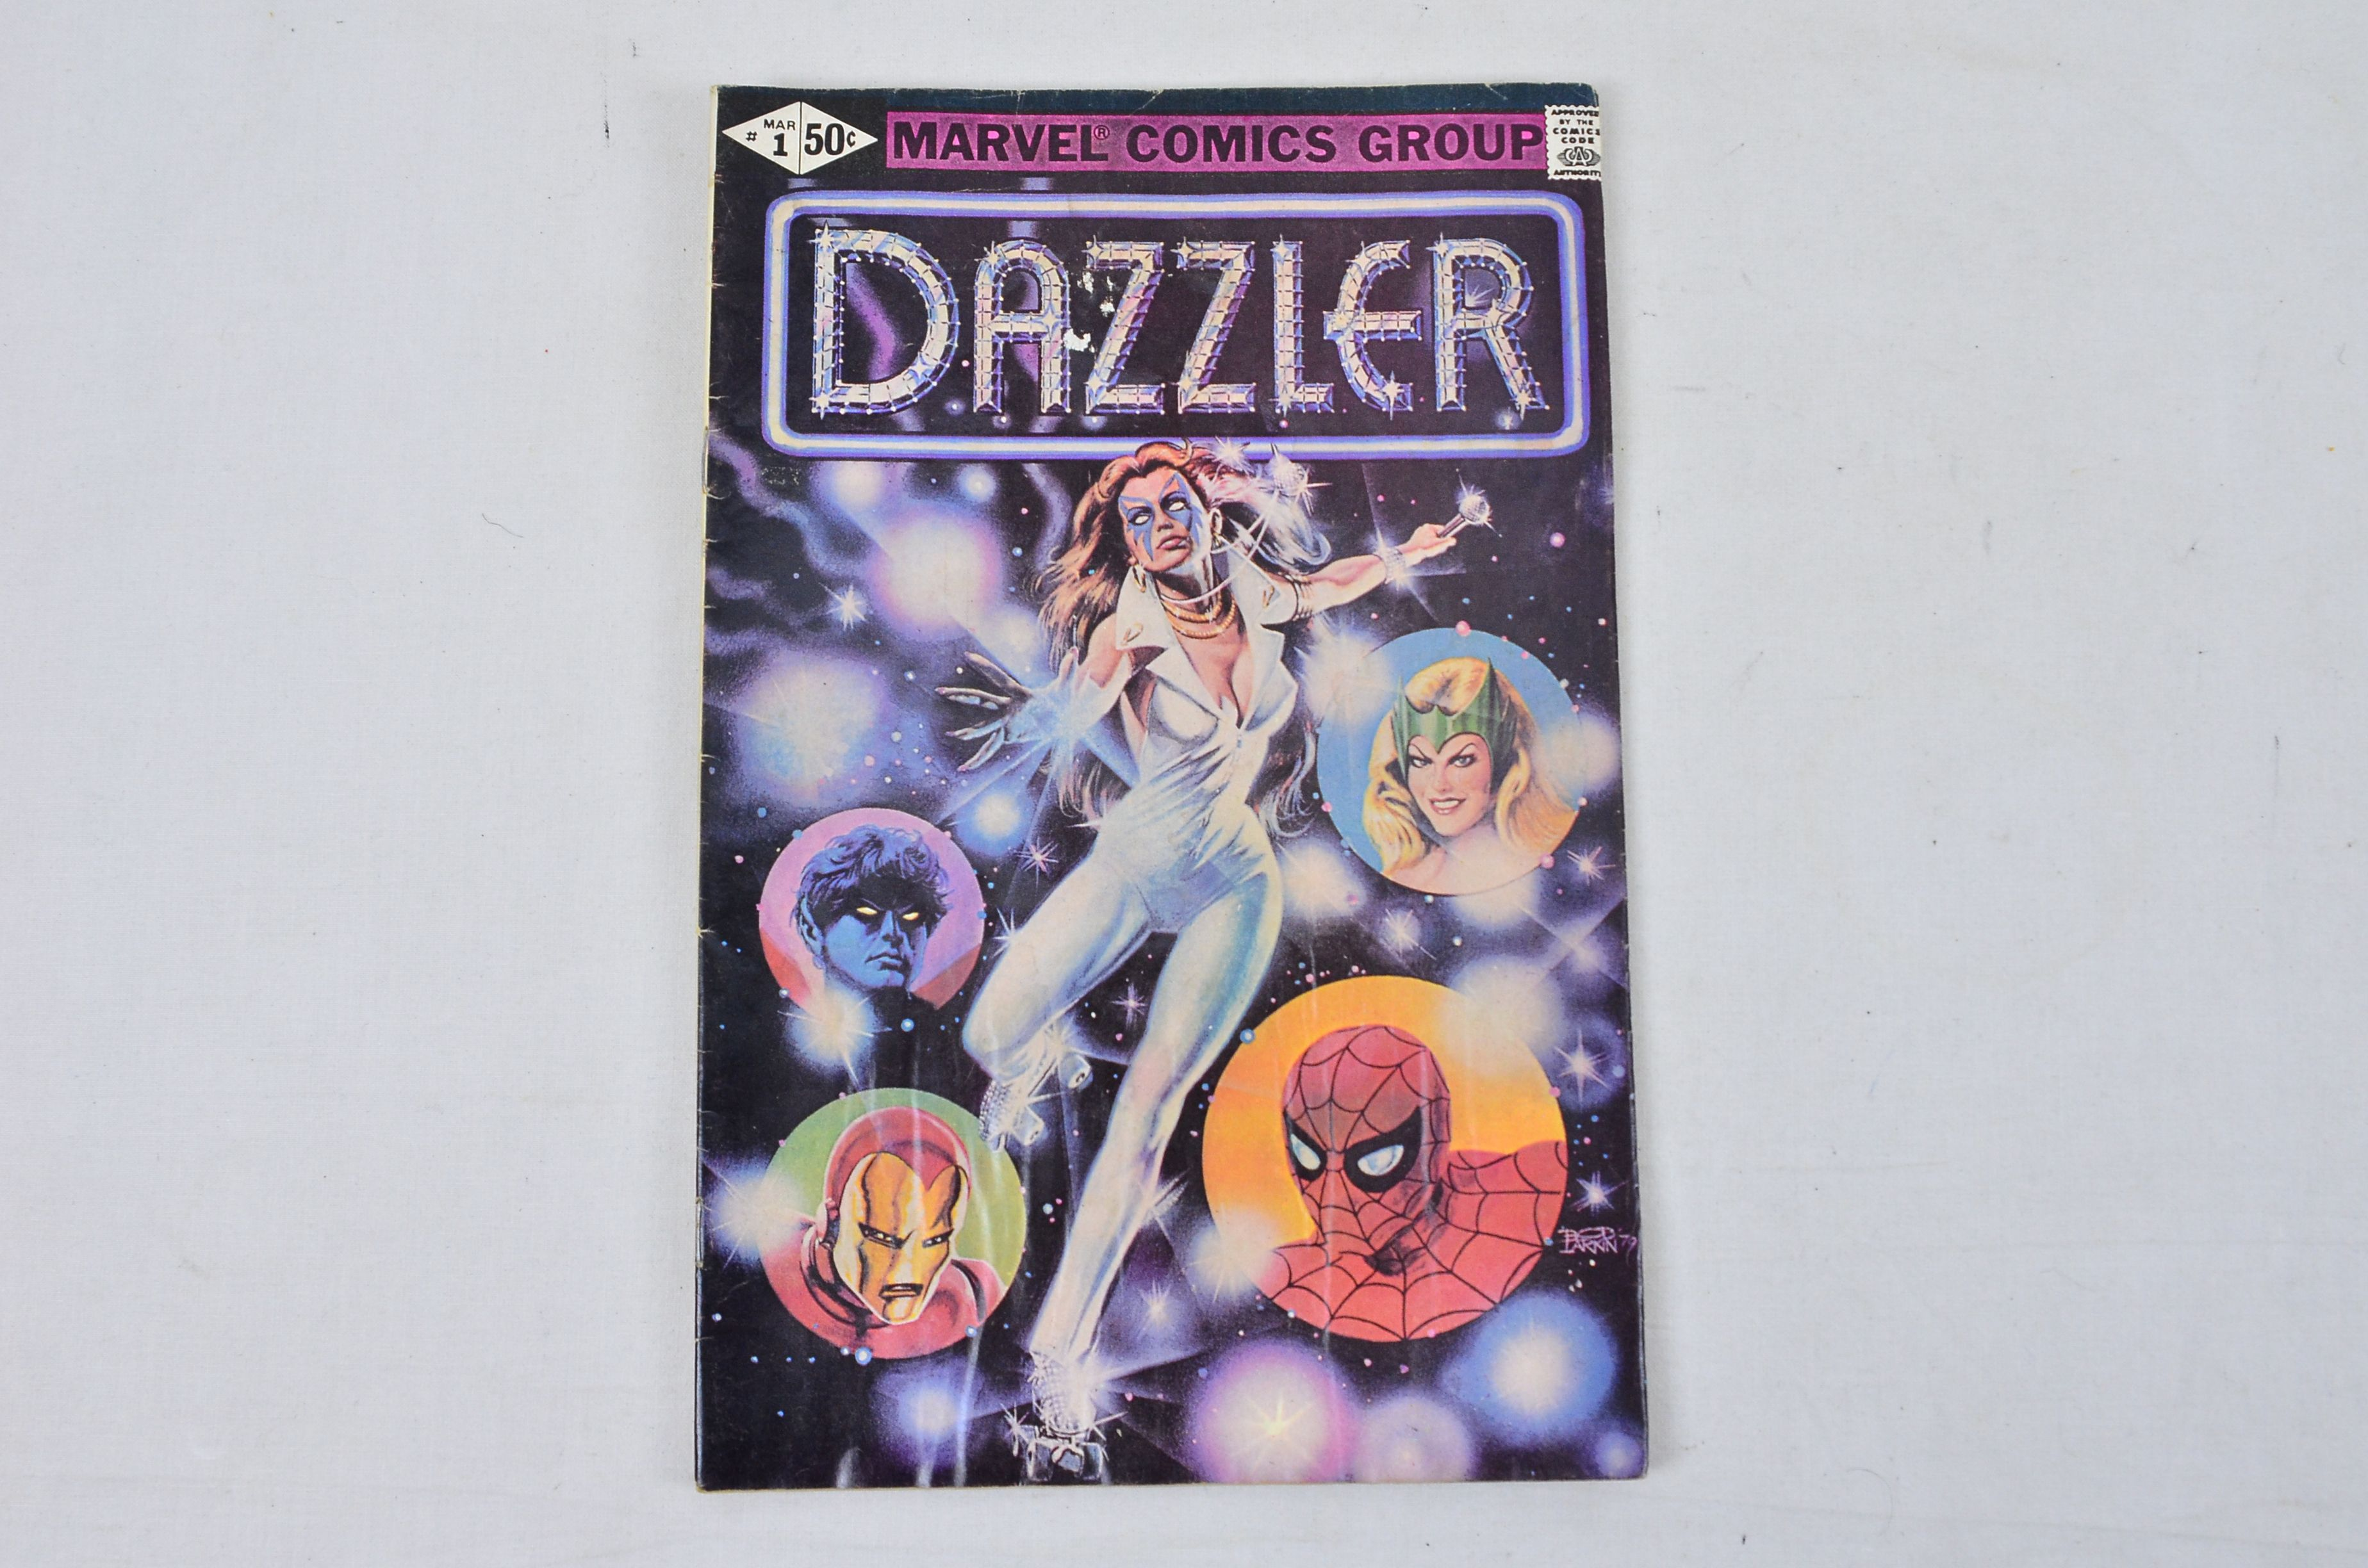 Vintage Marvel Comics Group Dazzler Collectable Comic 2